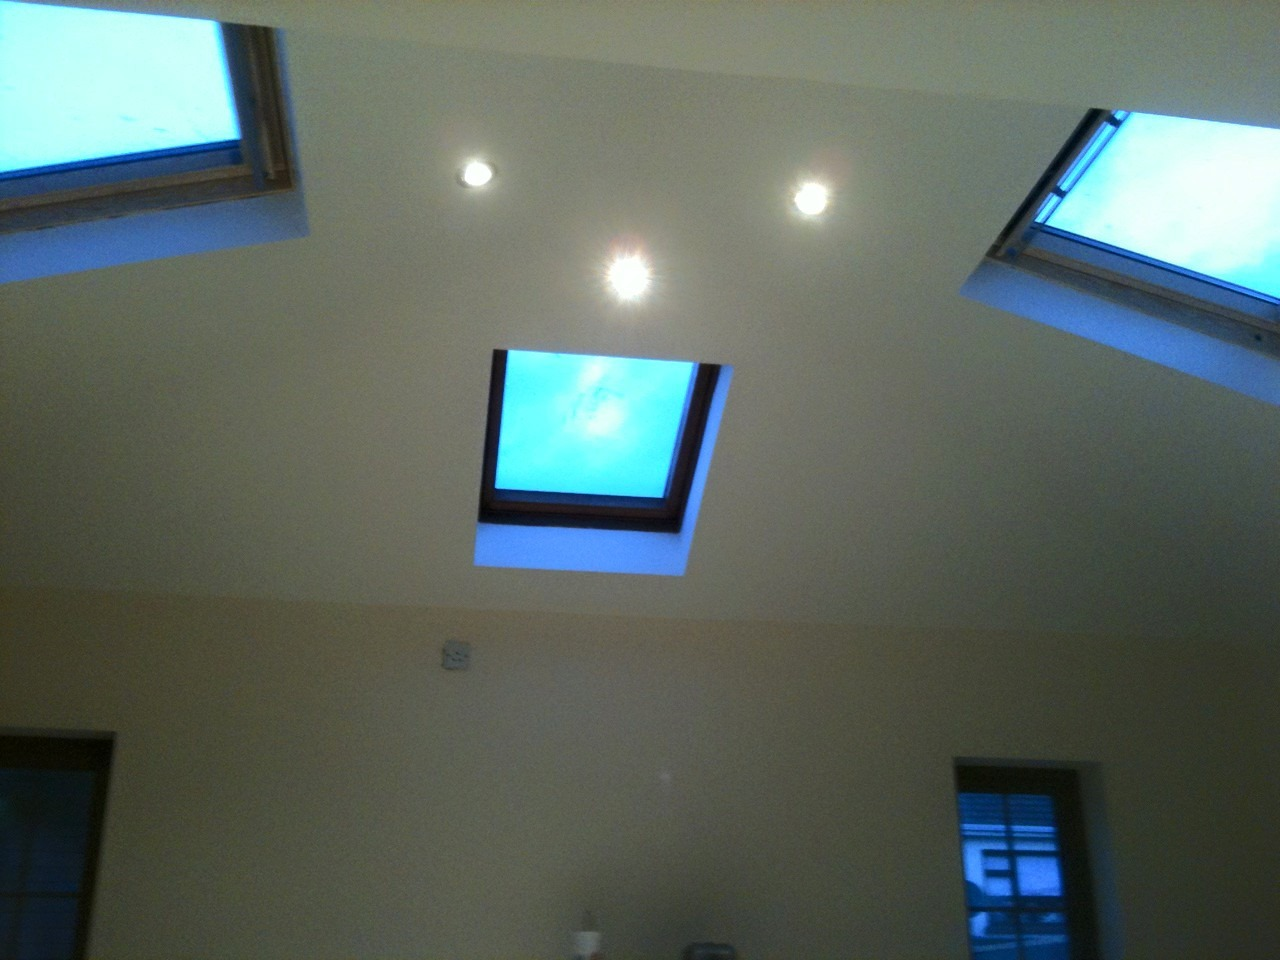 Image shows a recent plastering project completed by our plasterer in Southern Cross